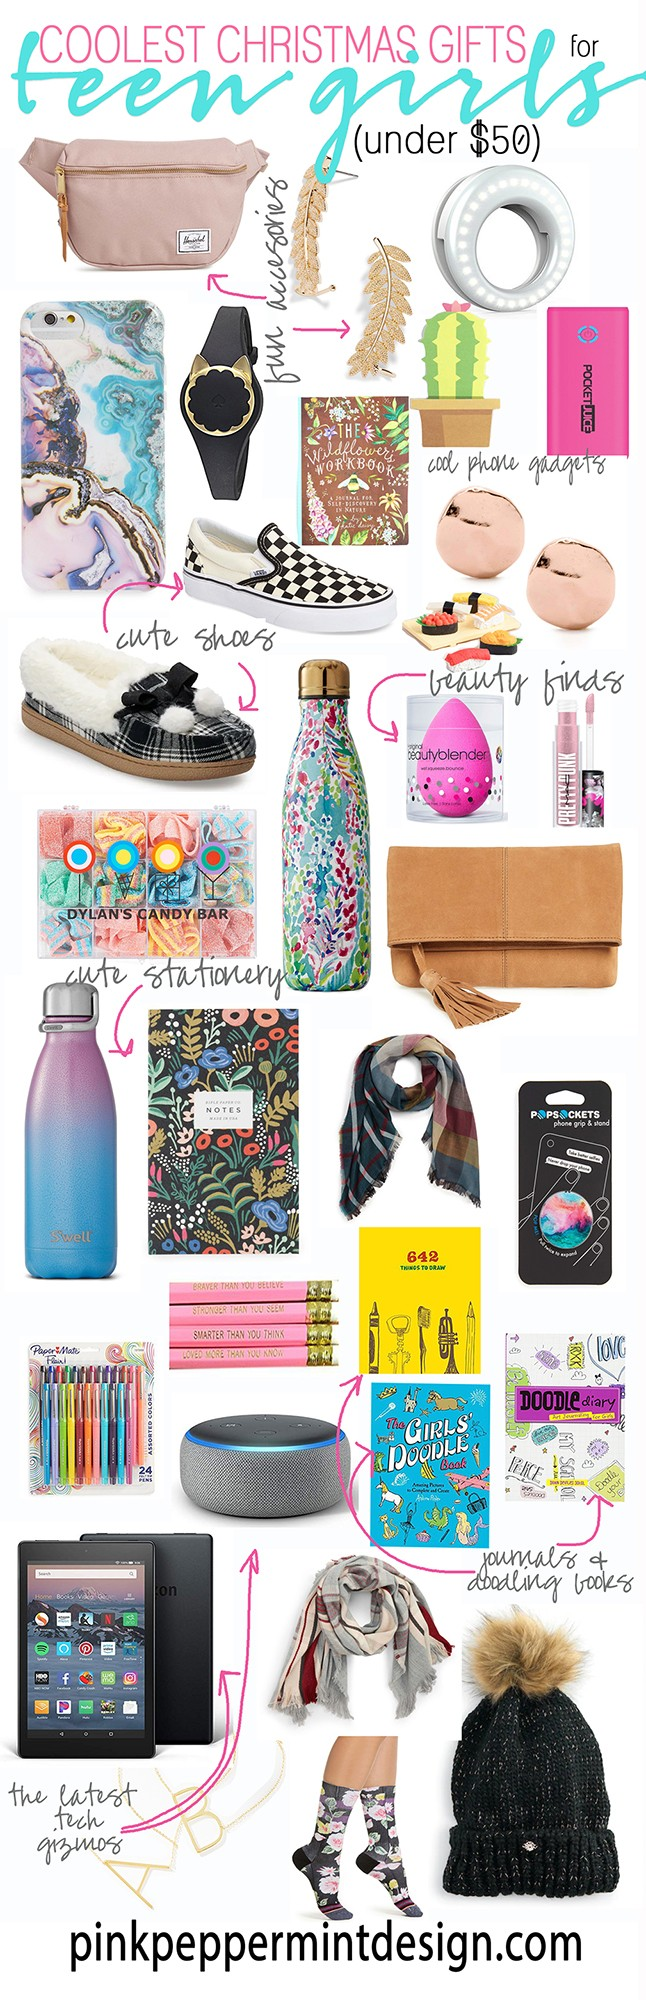 i hope you find this coolest christmas gifts for teen girls gift guide helpful you can find all of my other gift guides here